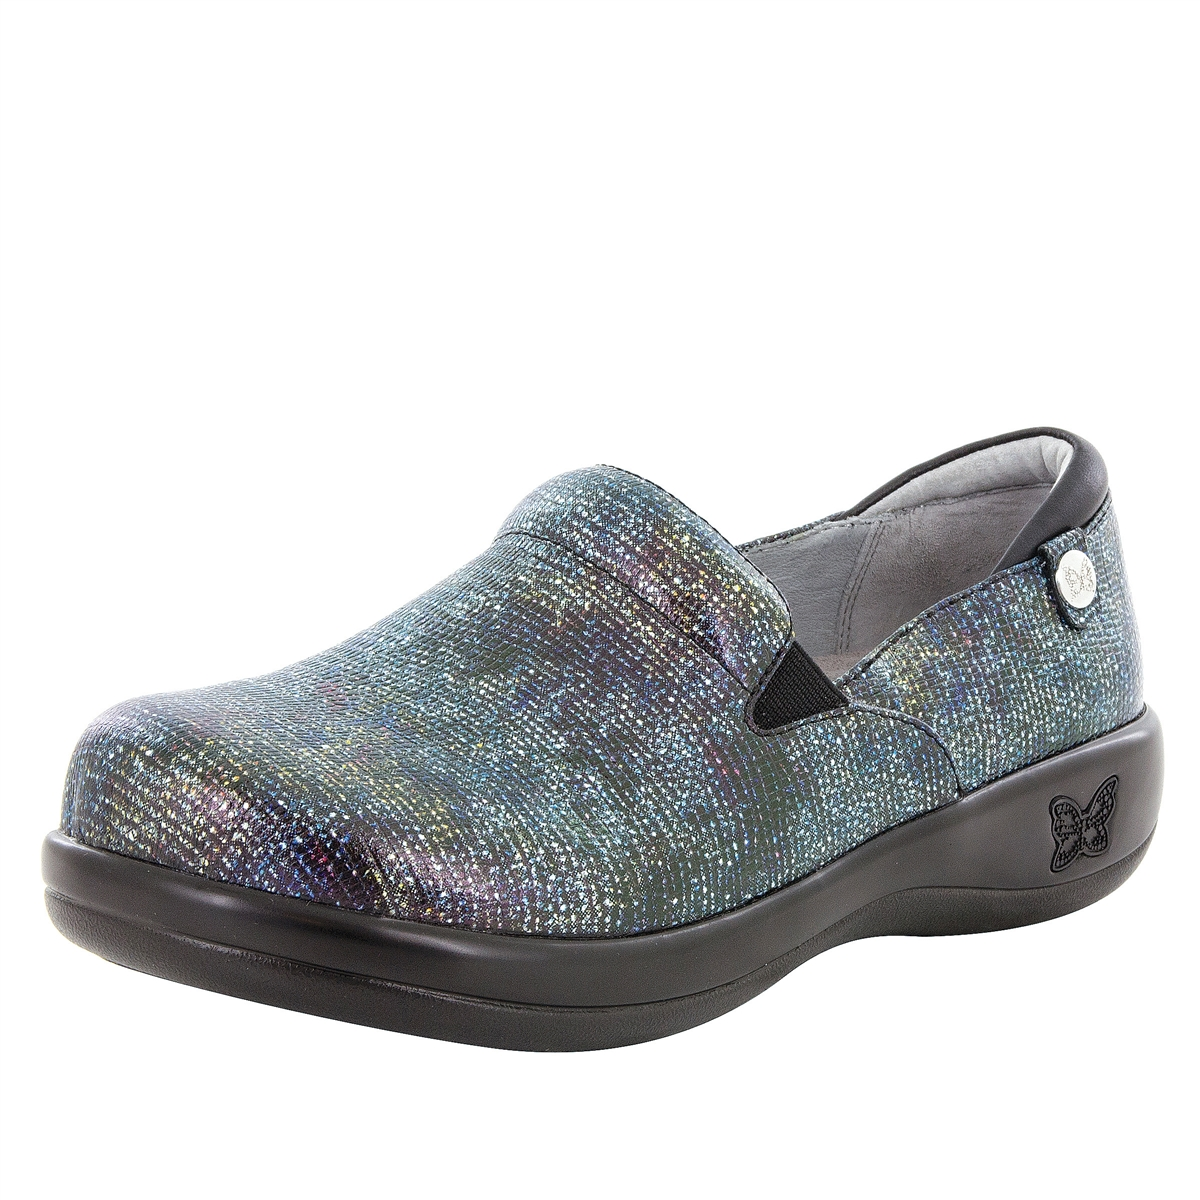 Alegria Keli Glimmer Glam womens comfort shoe. View Larger Photo Email ...